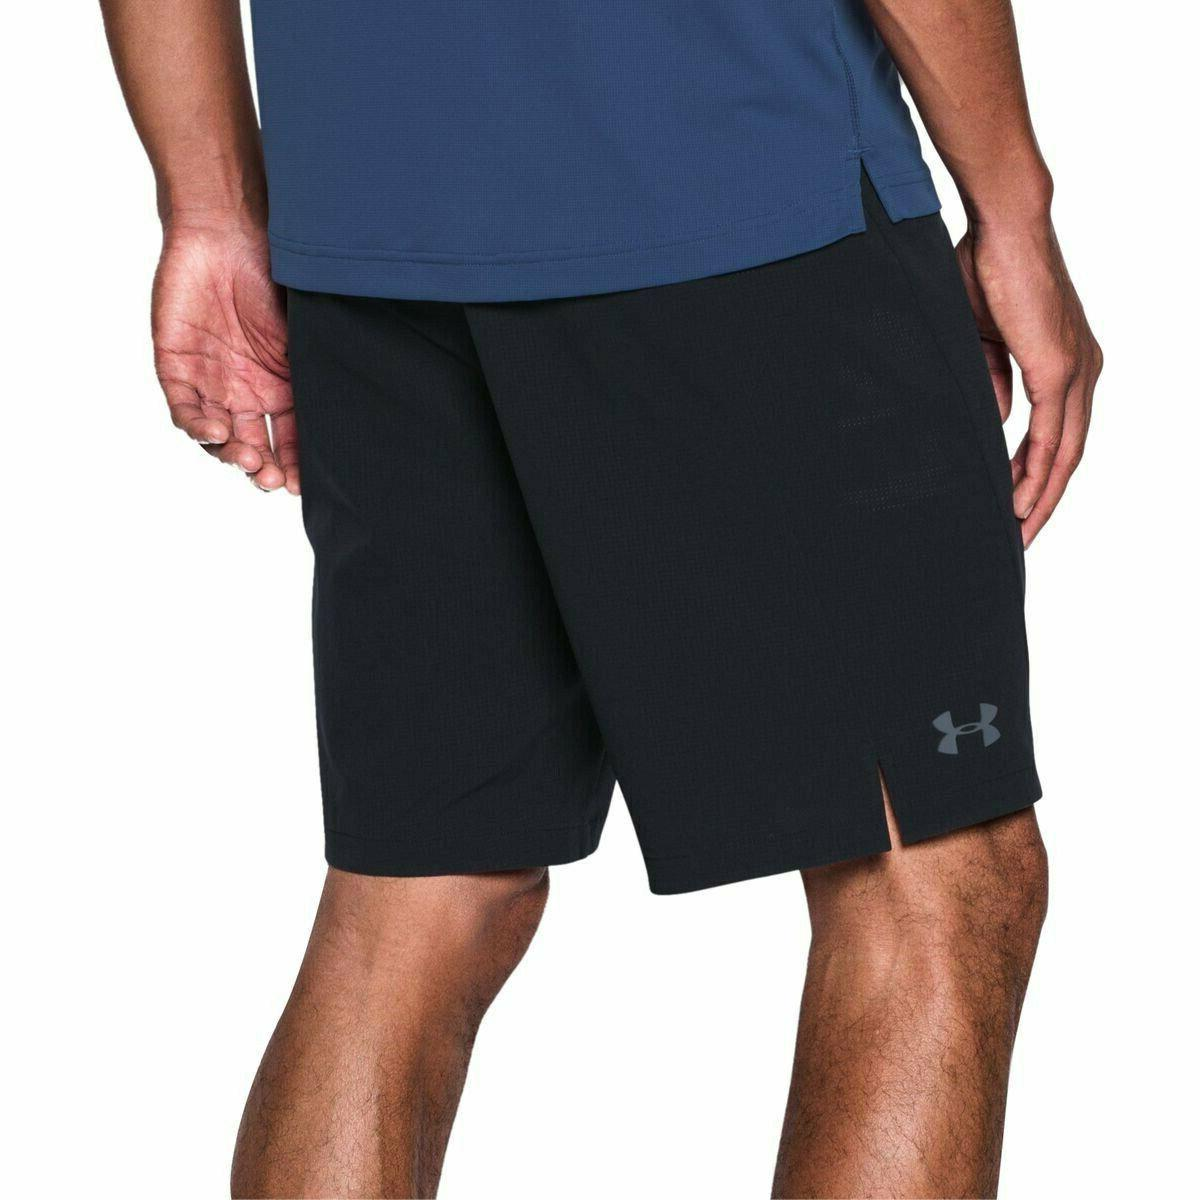 UNDER ARMOUR Vent Board NWT Bathing 30